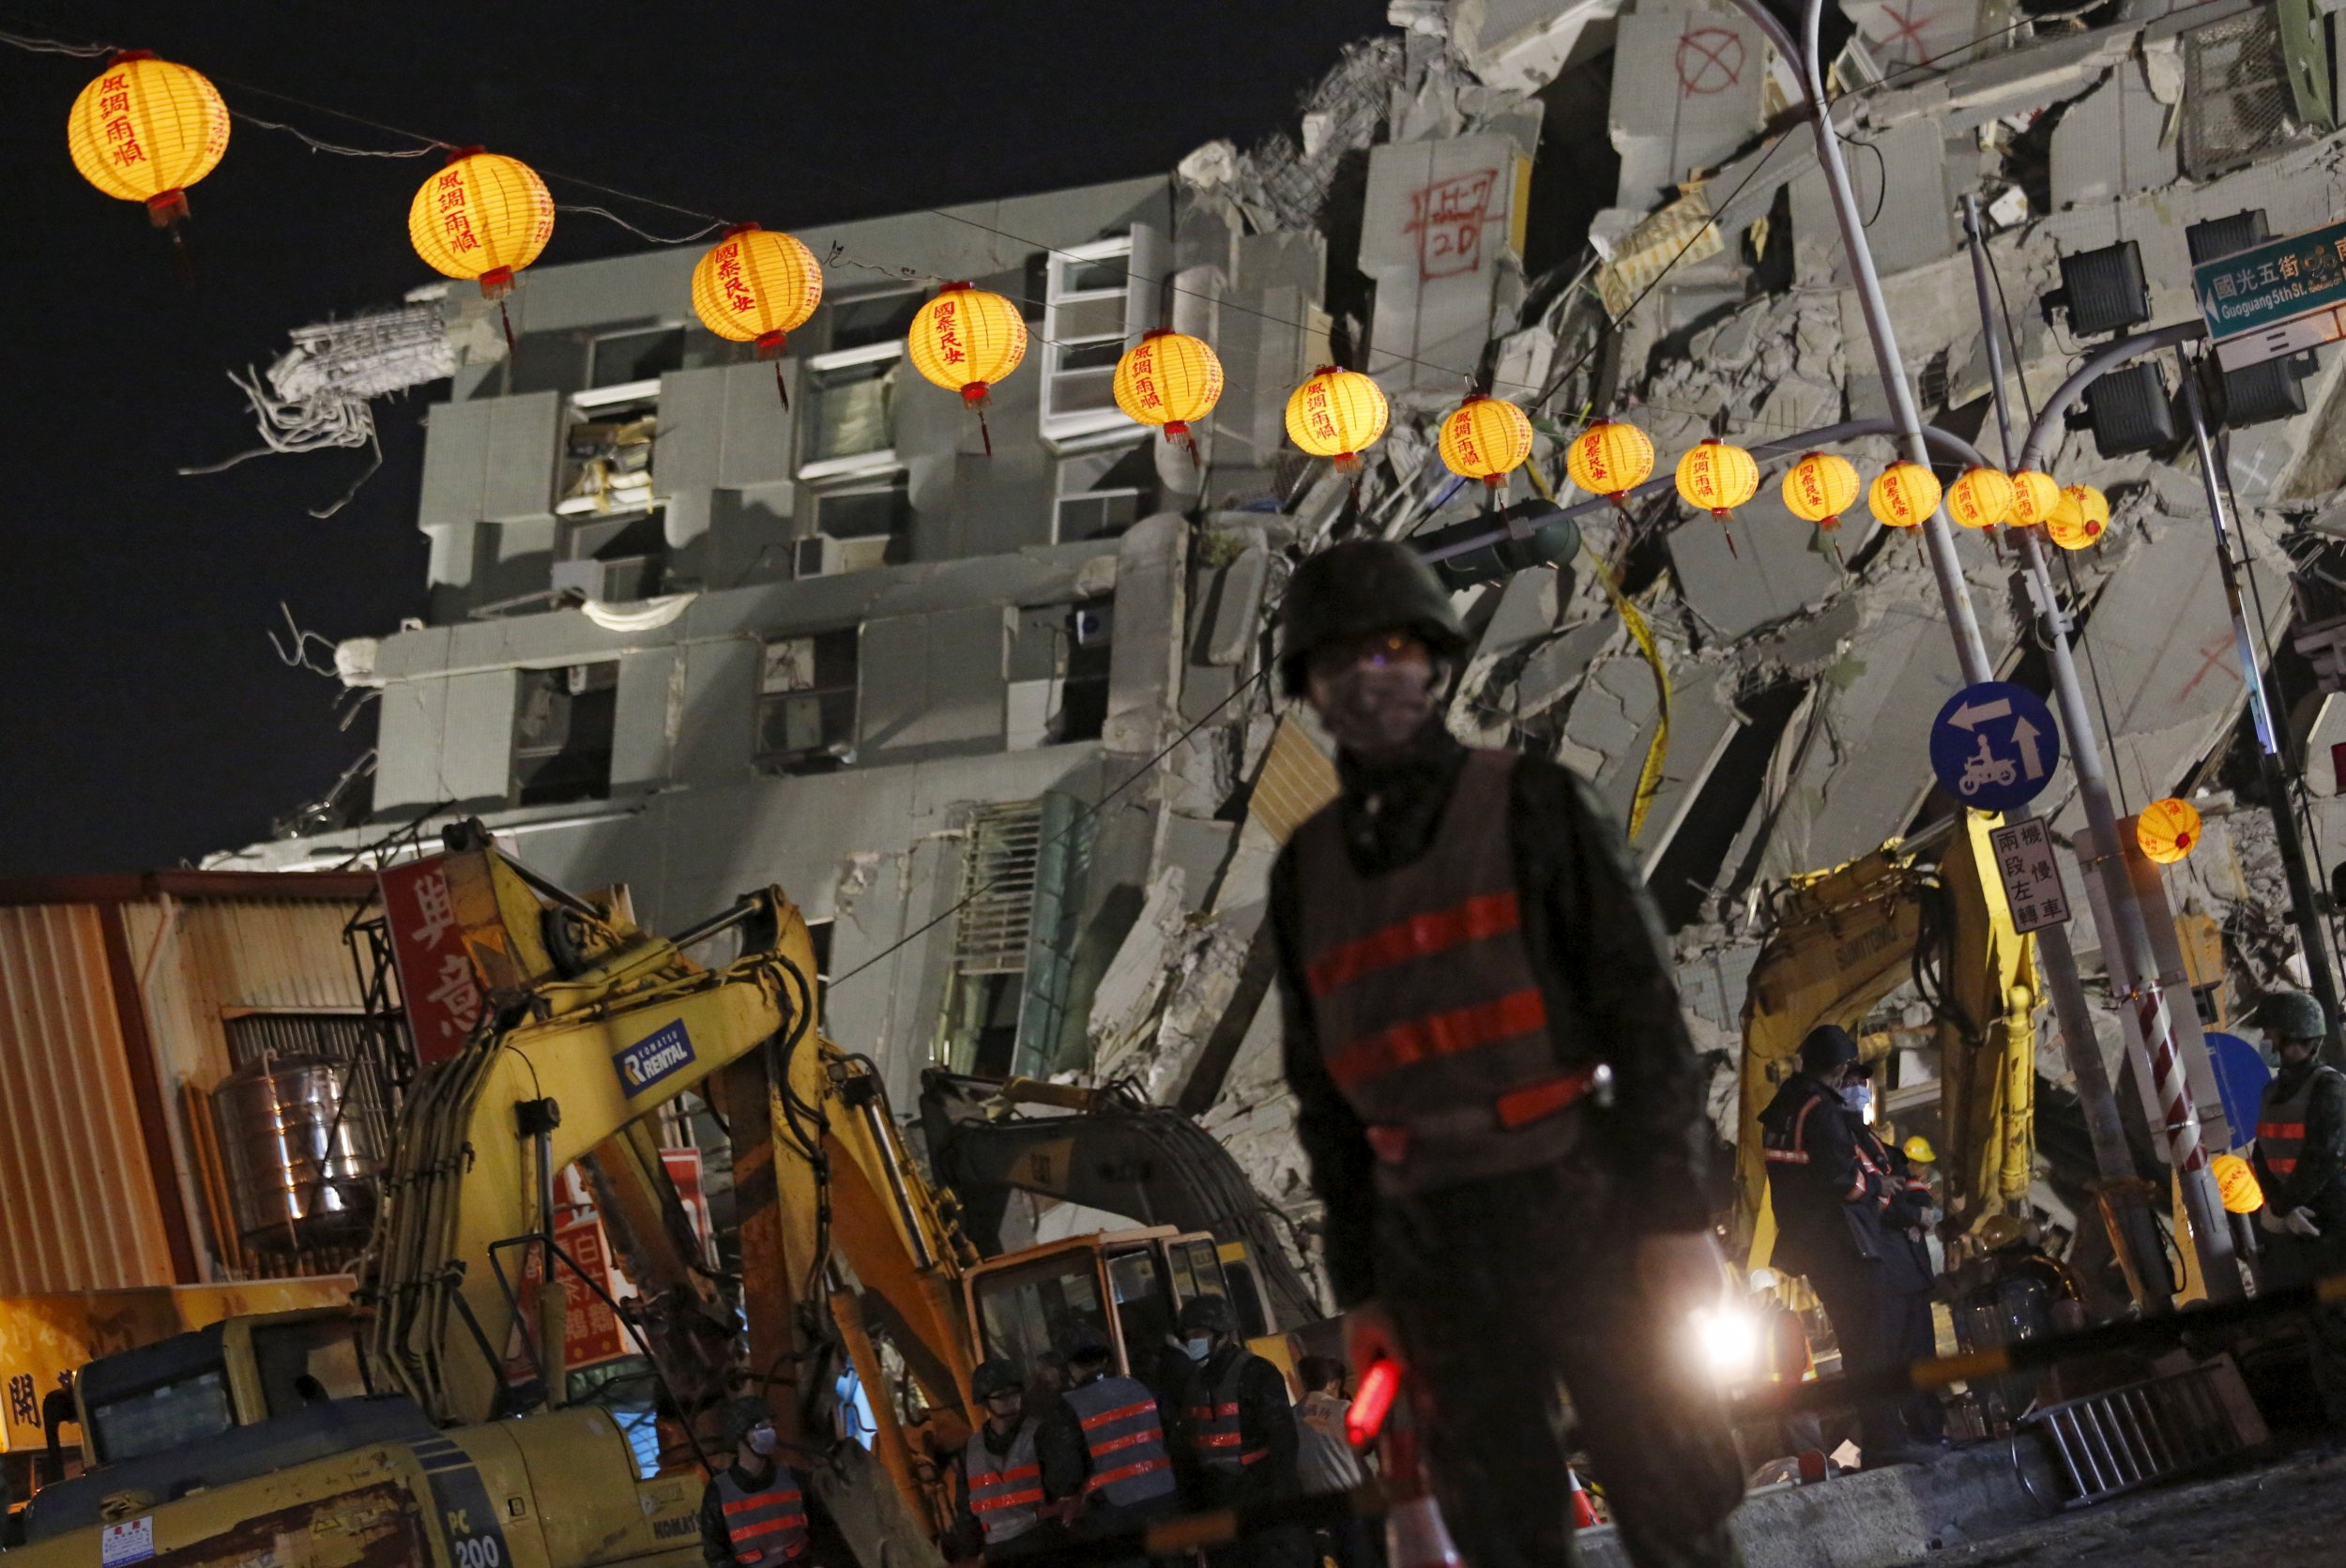 Collapsed building and lanterns